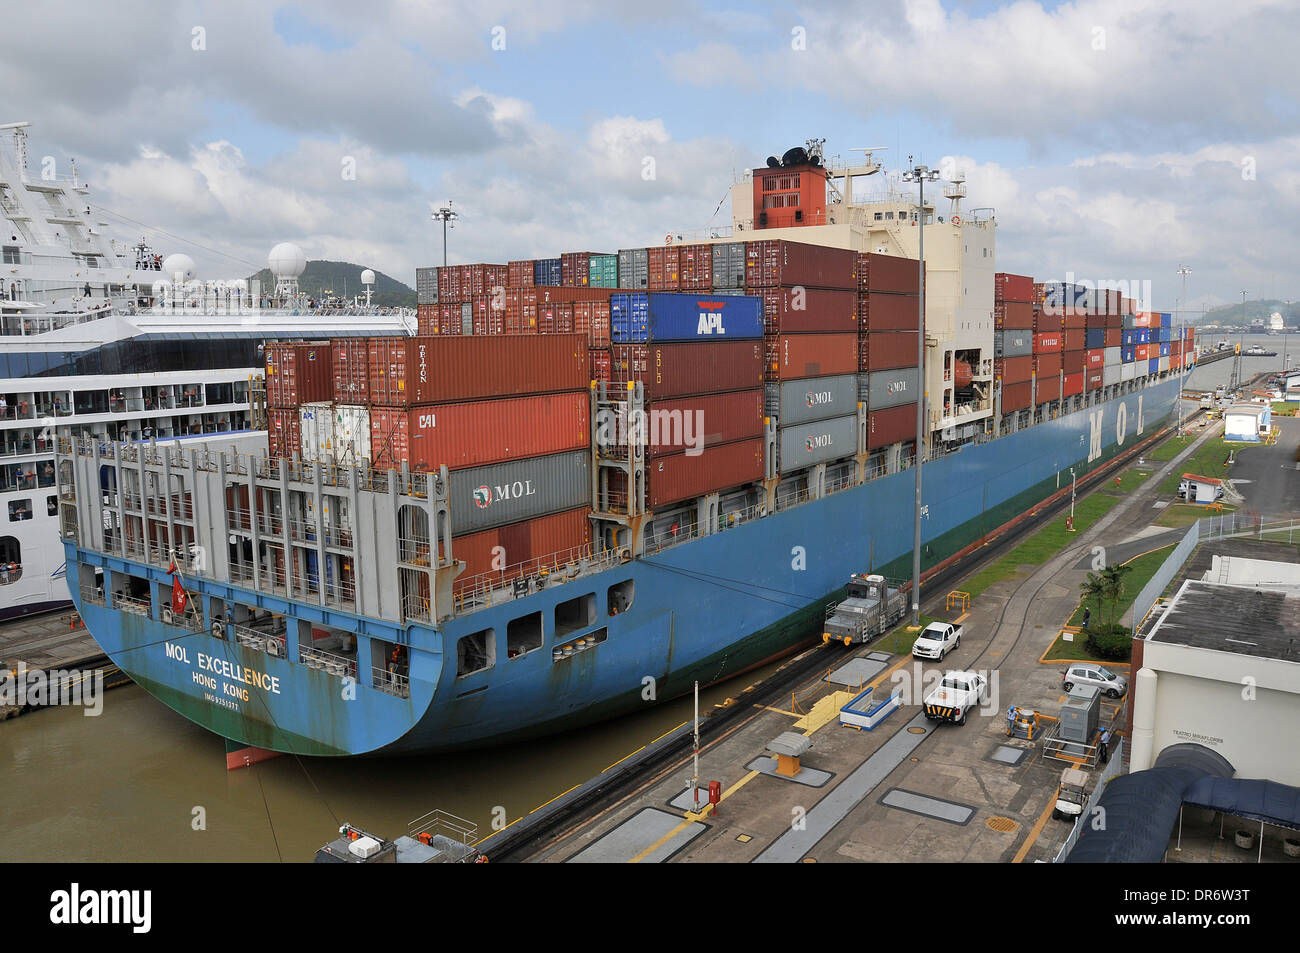 Mol Excellence ship in Panama canal Miraflores - Stock Image